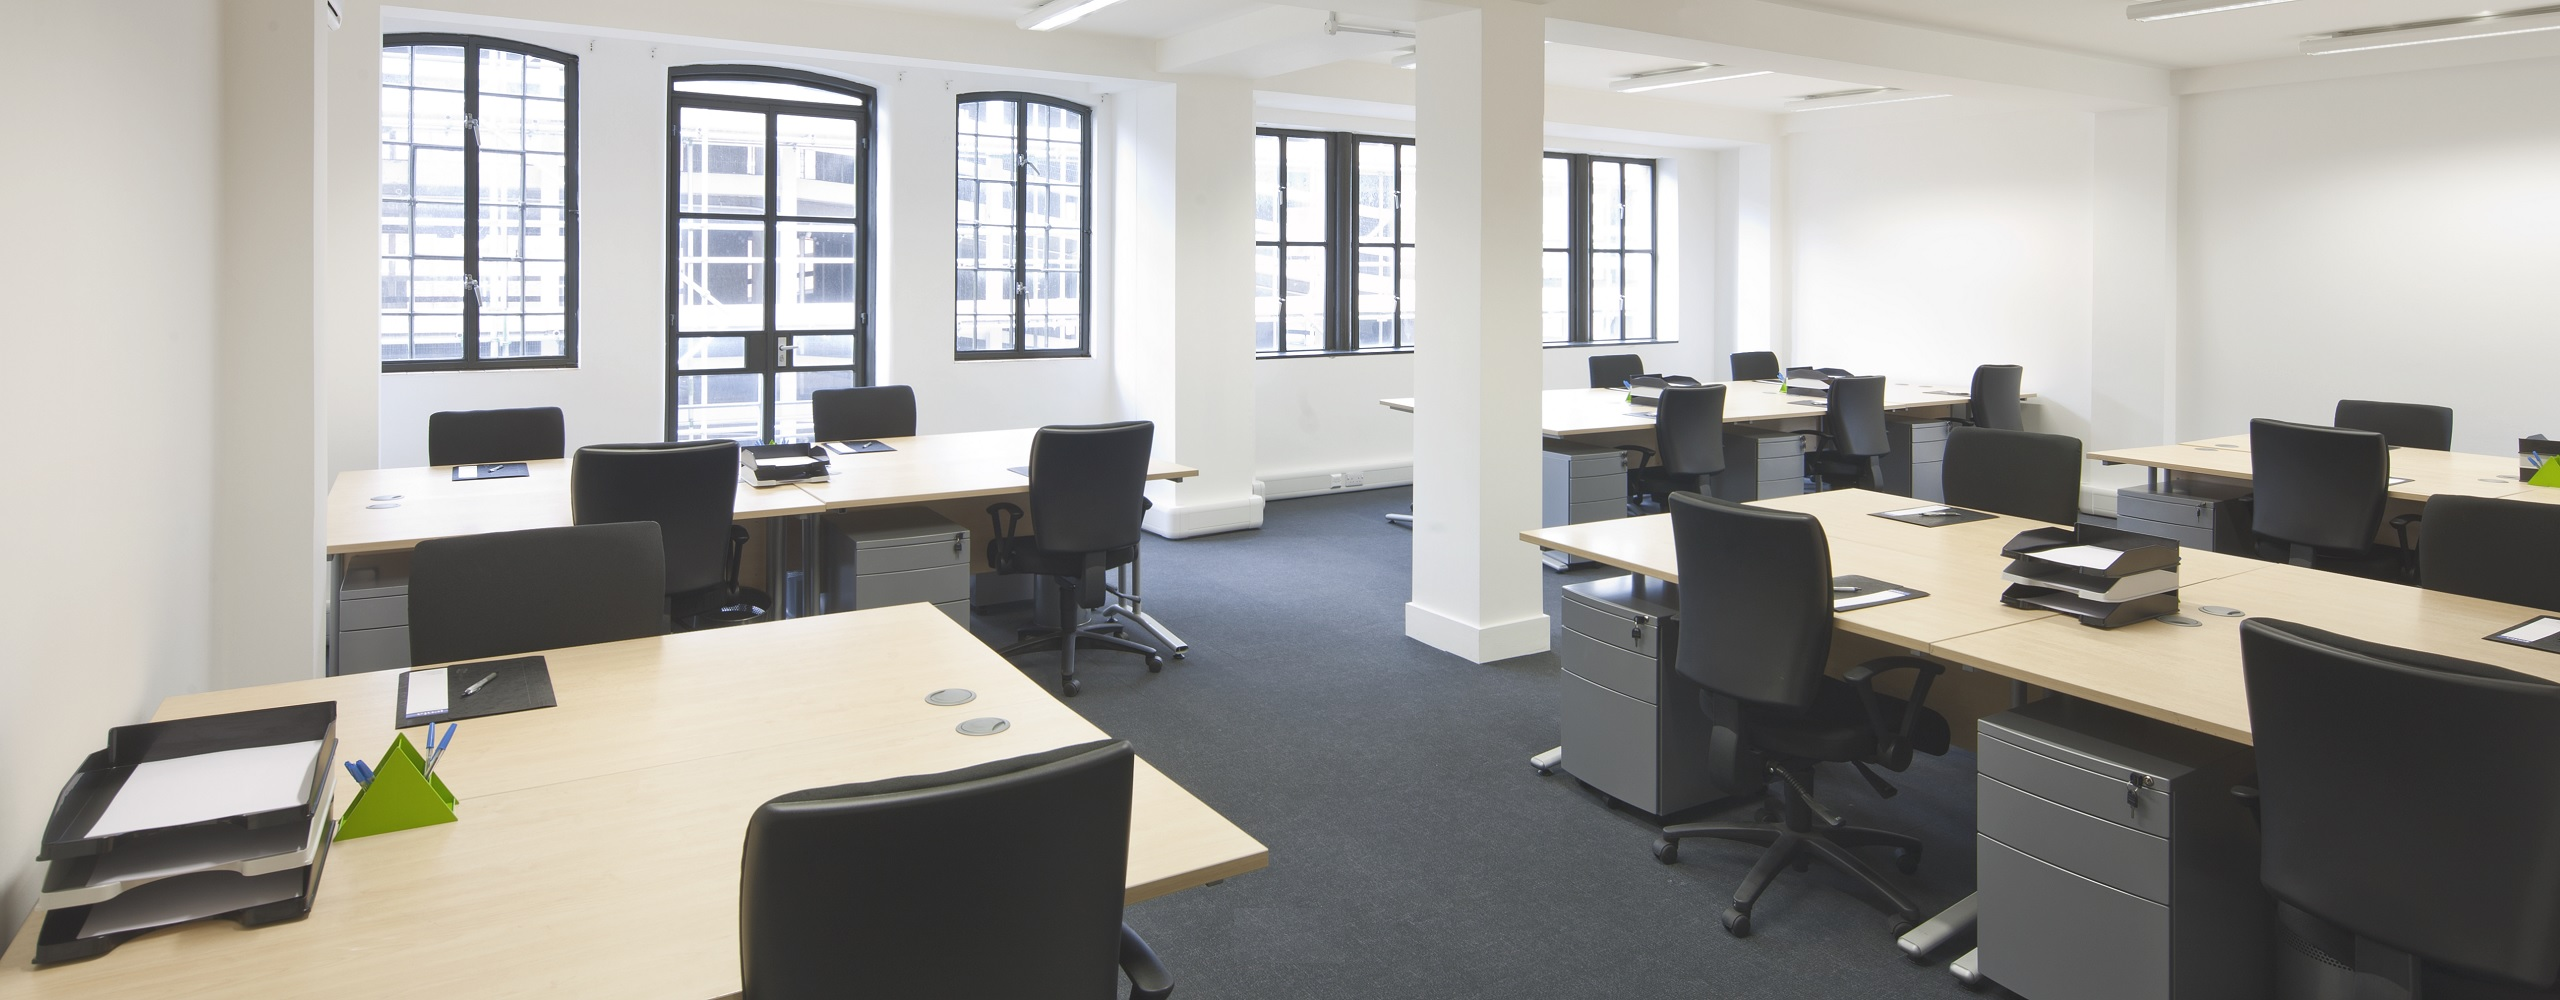 Picking the Right Office for Your Business 5 Things to